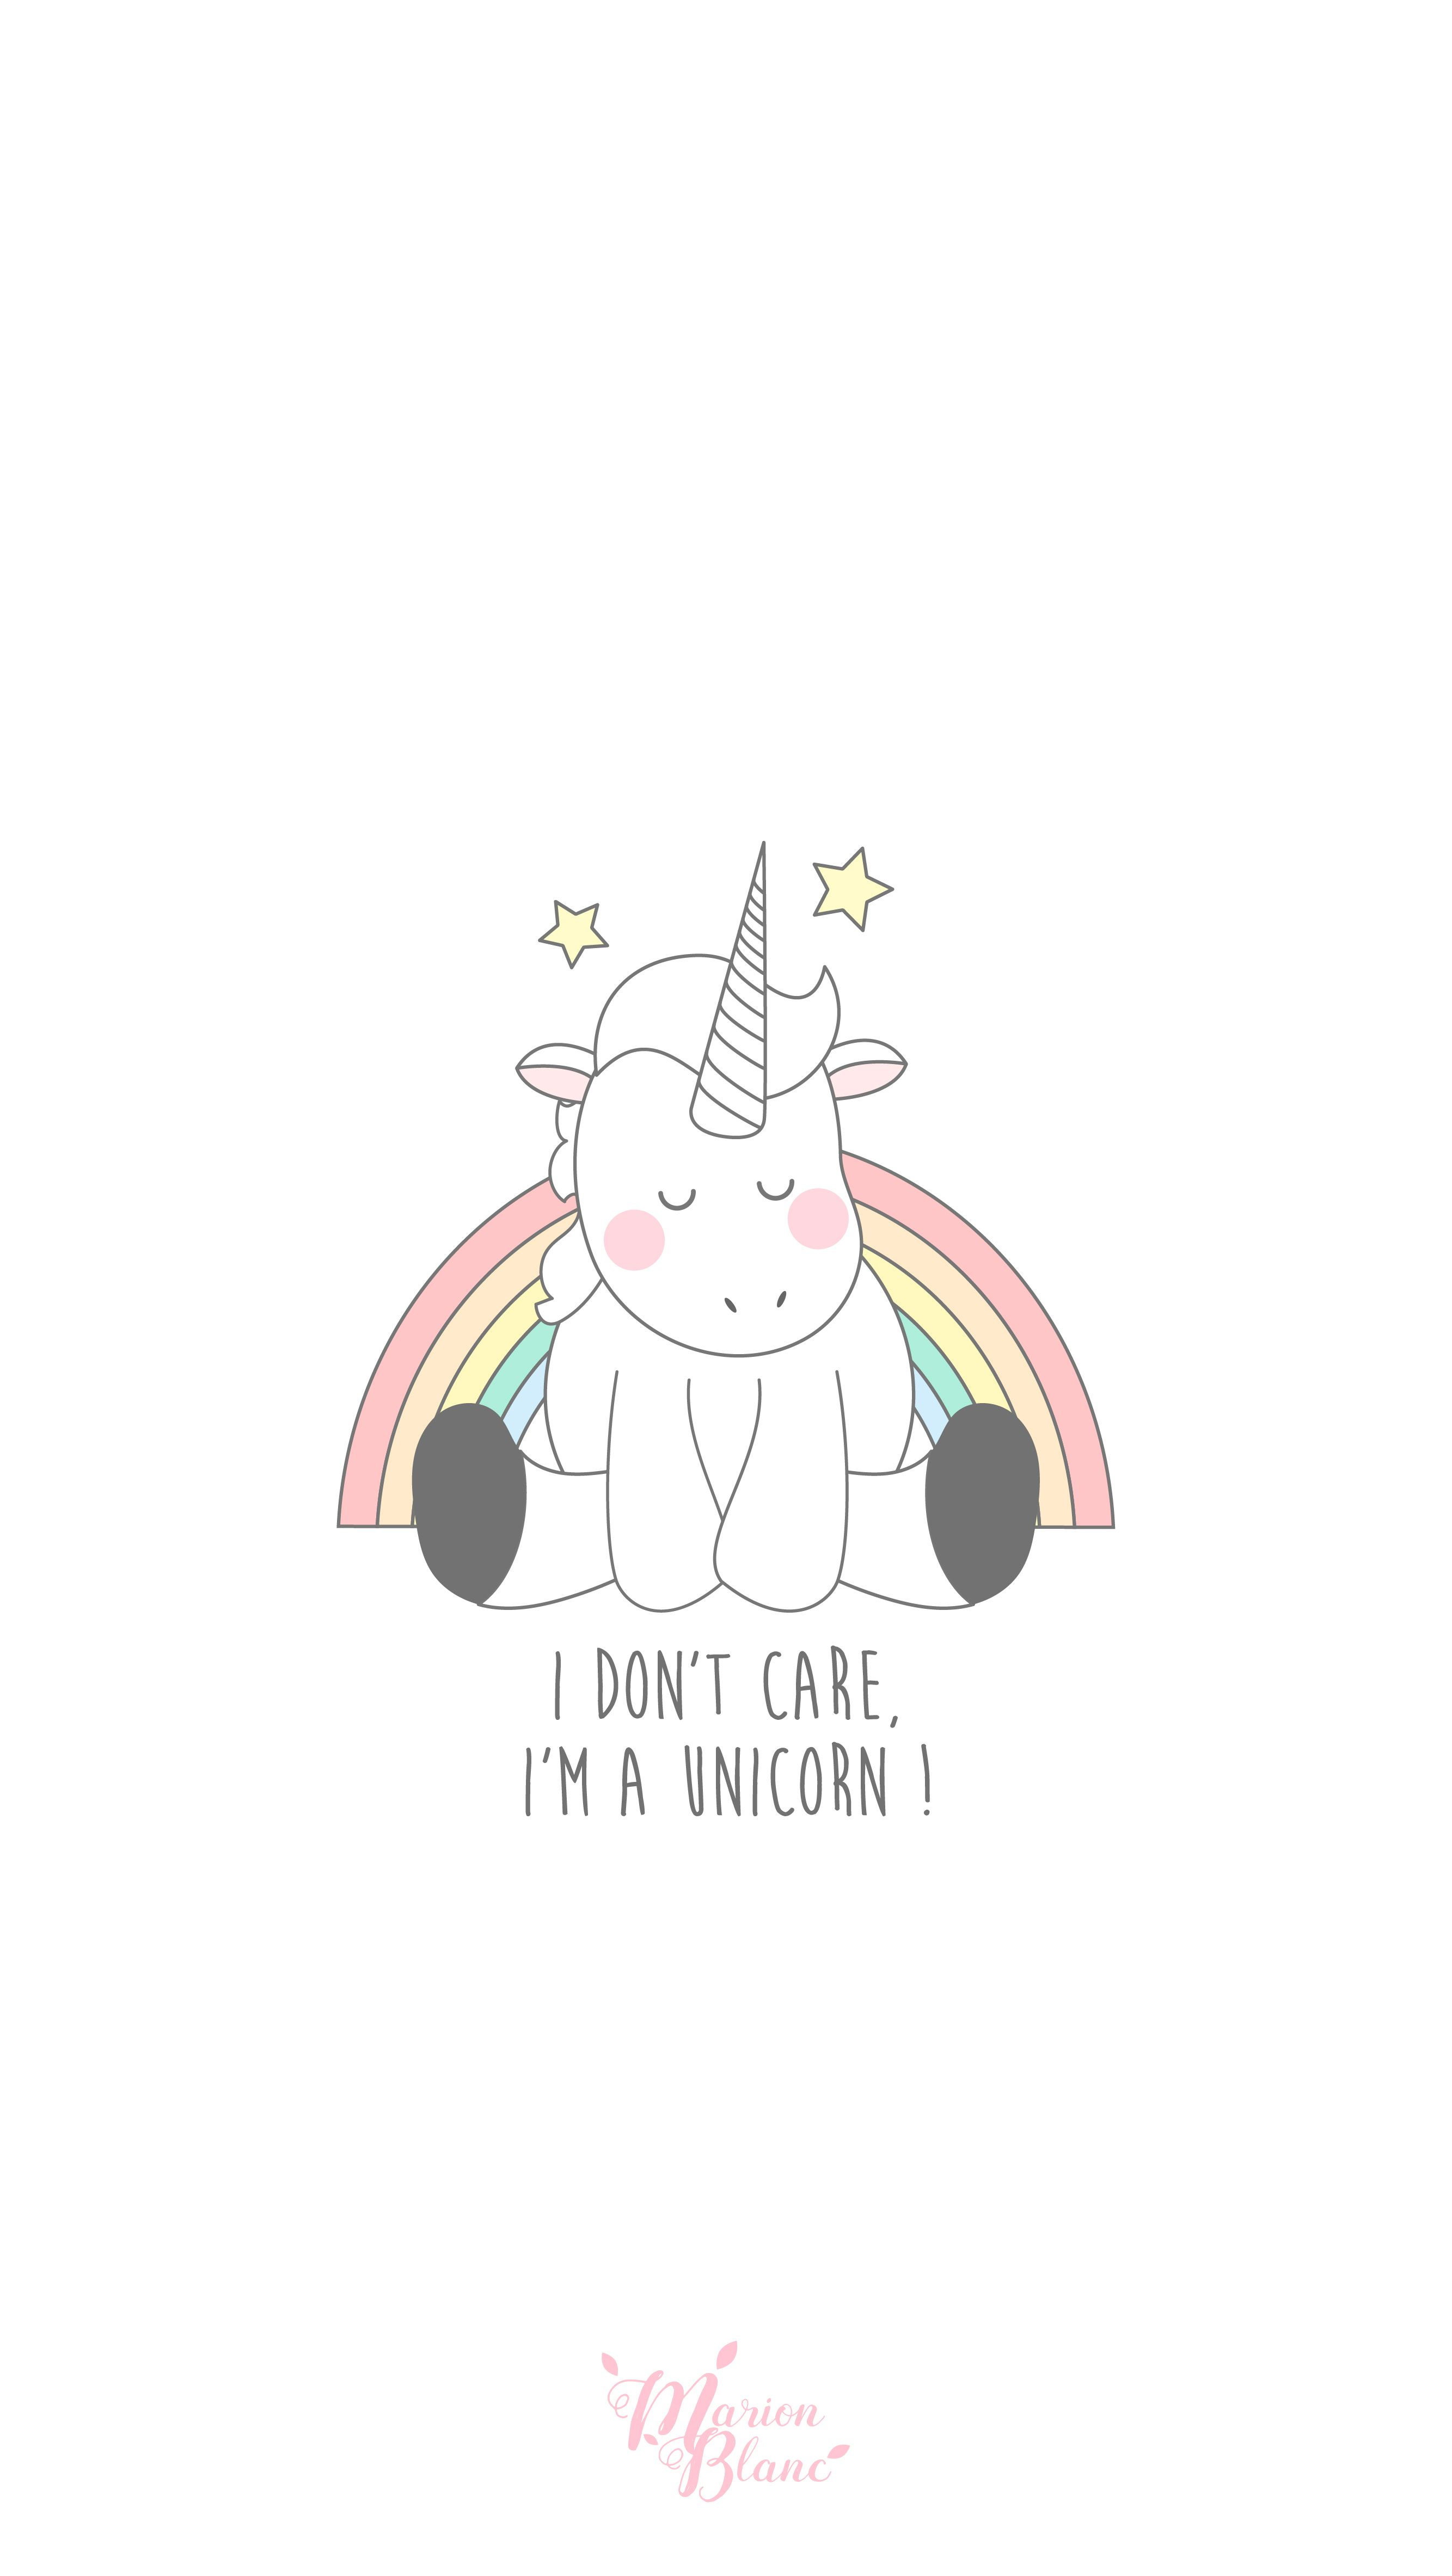 Unicorn Marion Blanc Beautiful Pinterest Unicorns